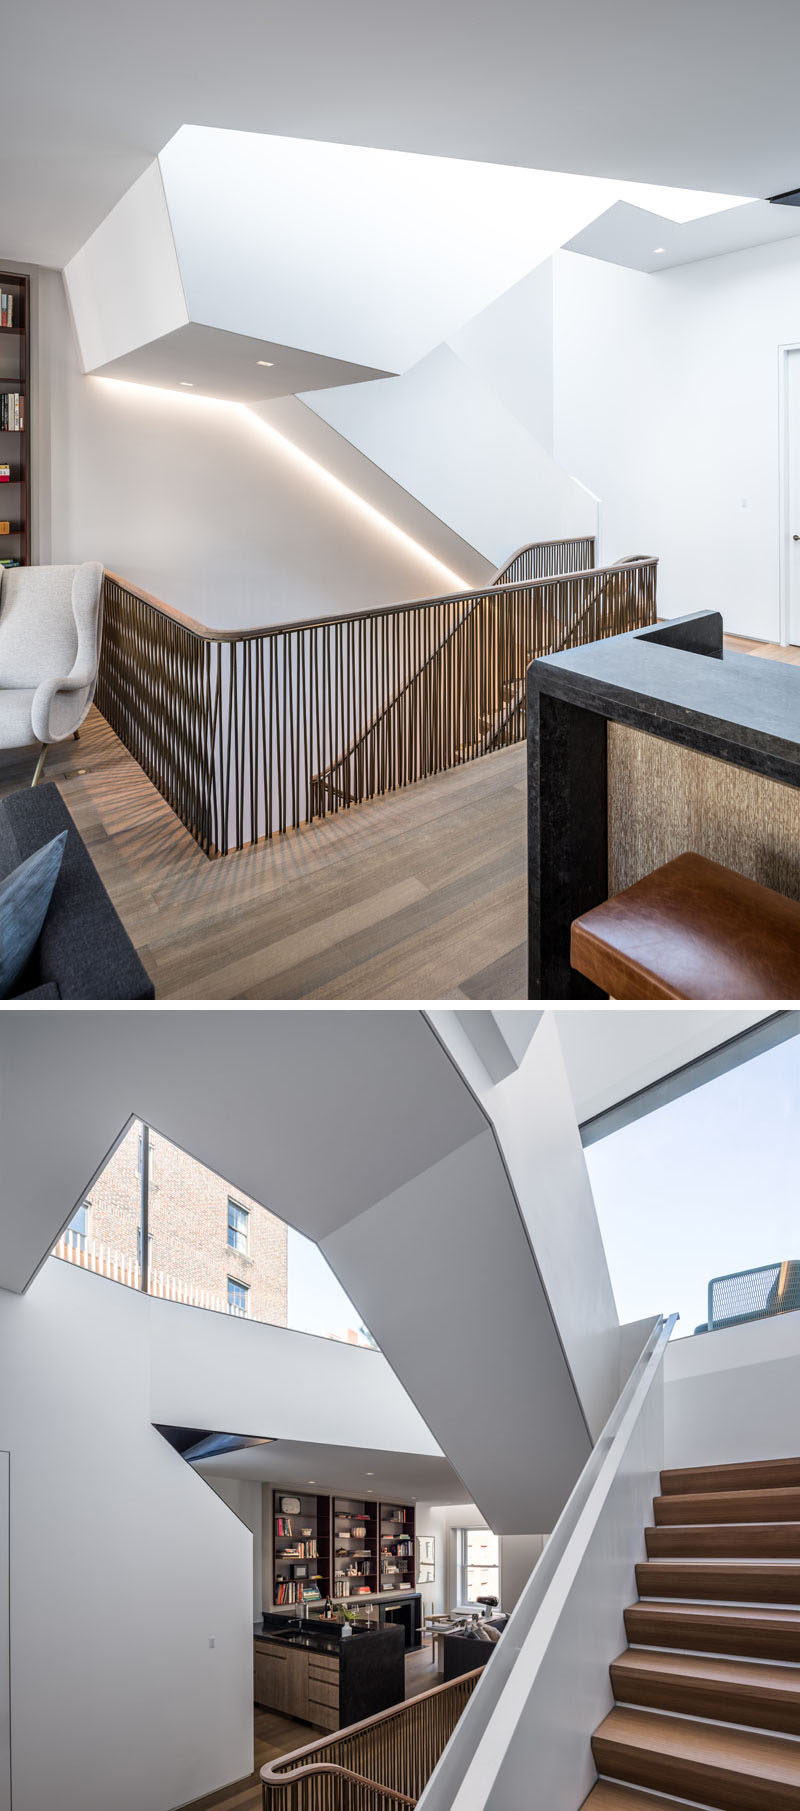 A structural steel plate stair links this modern library to the roof terrace above. #SteelStairs #Staircase